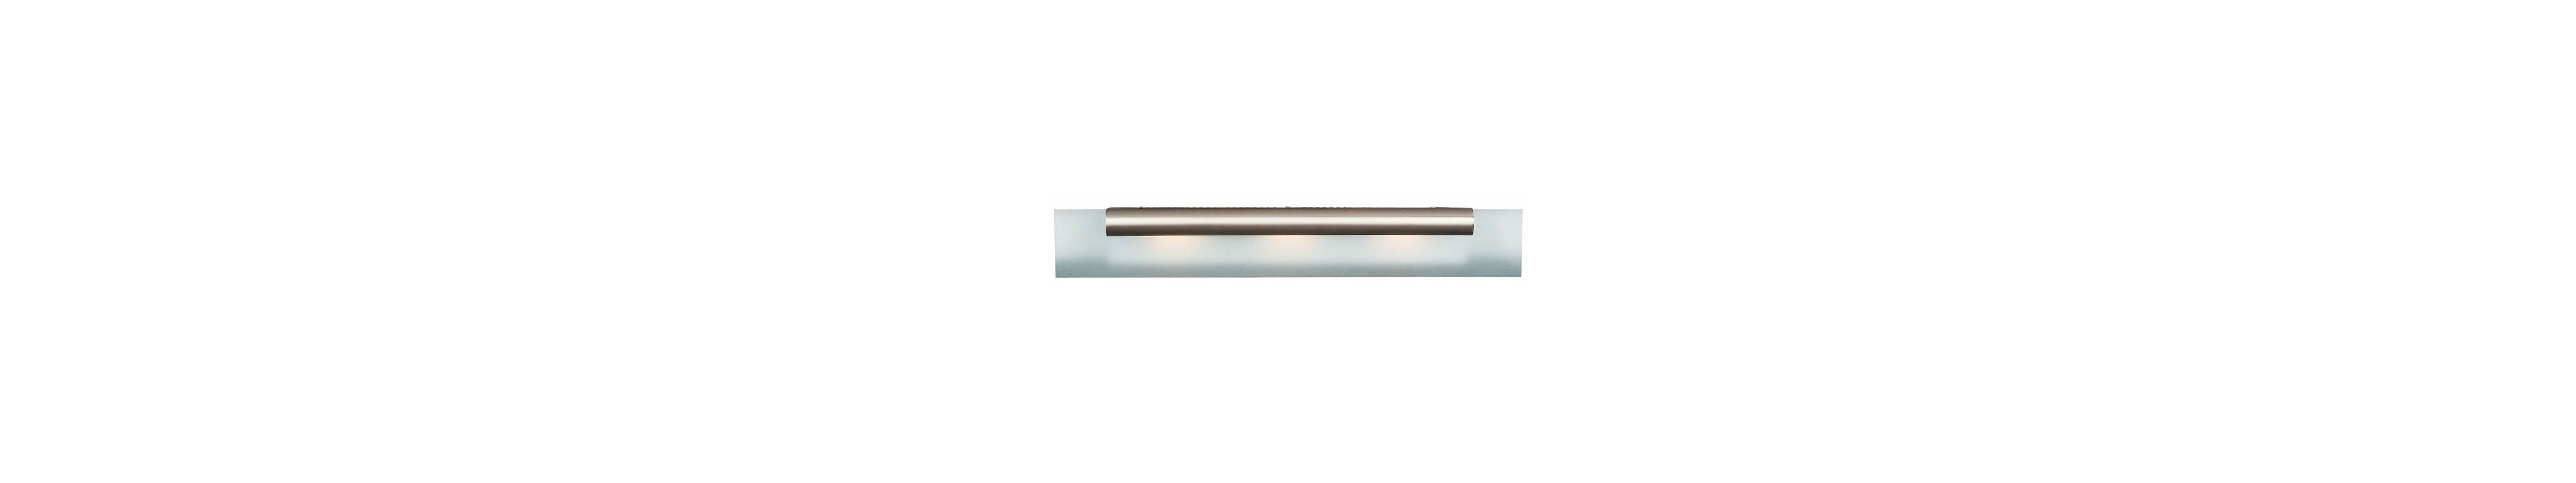 "Access Lighting 62063 Three Light 36"" Wide Bathroom Fixture from the"